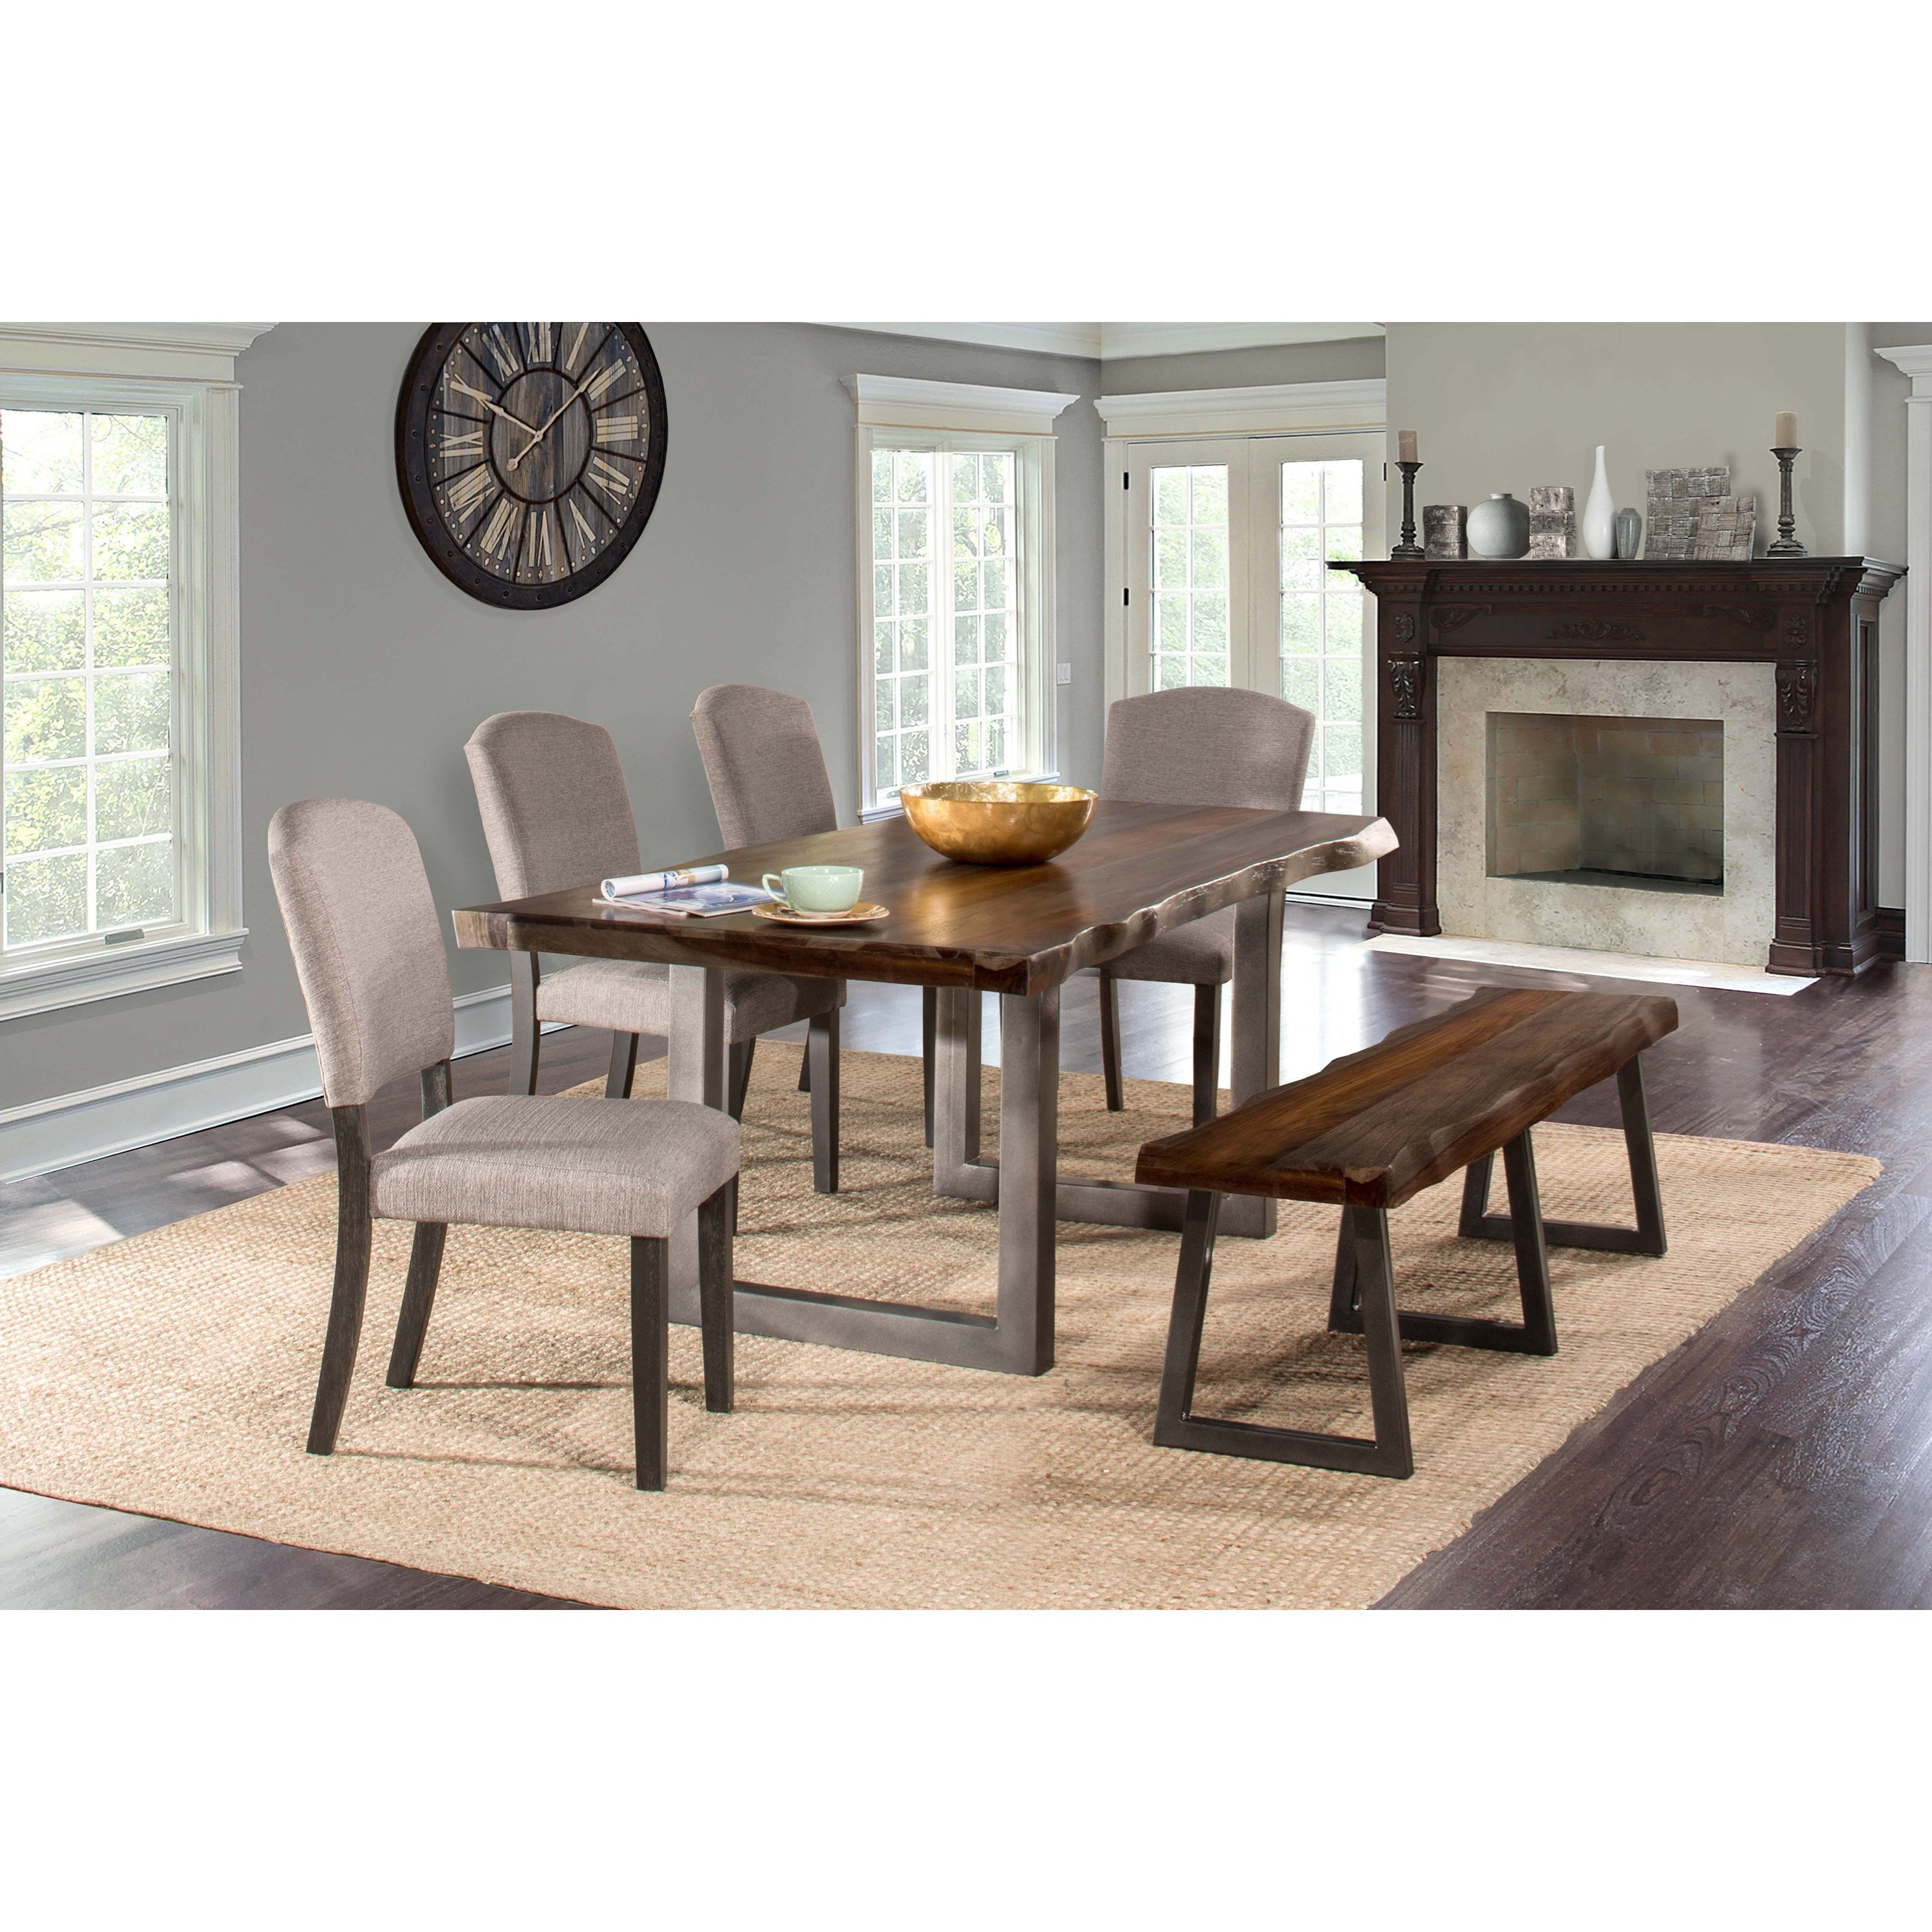 6-Piece Rectangle Dining Set